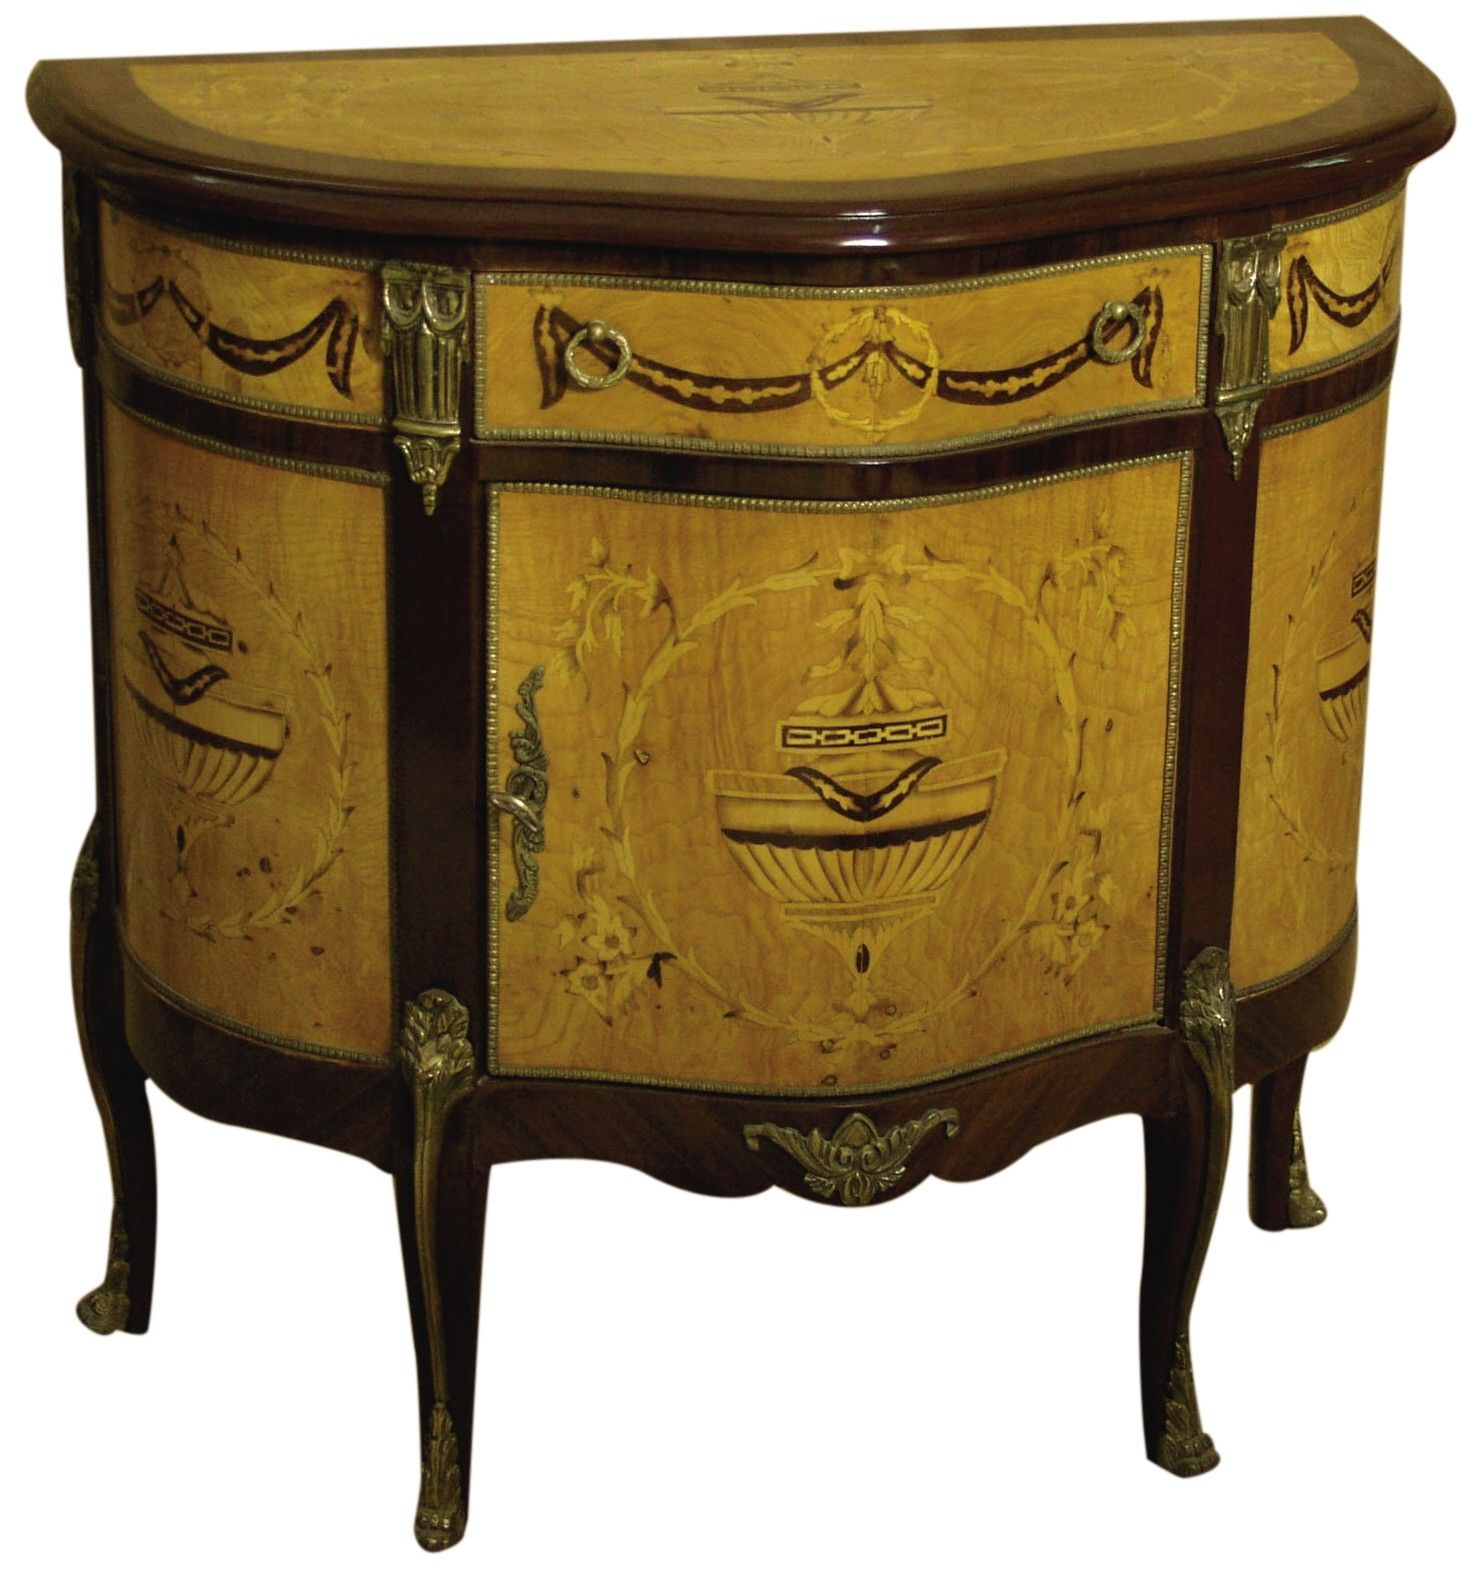 euro vintage furniture | images of furniture reproduction antiques french  style european . - Euro Vintage Furniture Images Of Furniture Reproduction Antiques